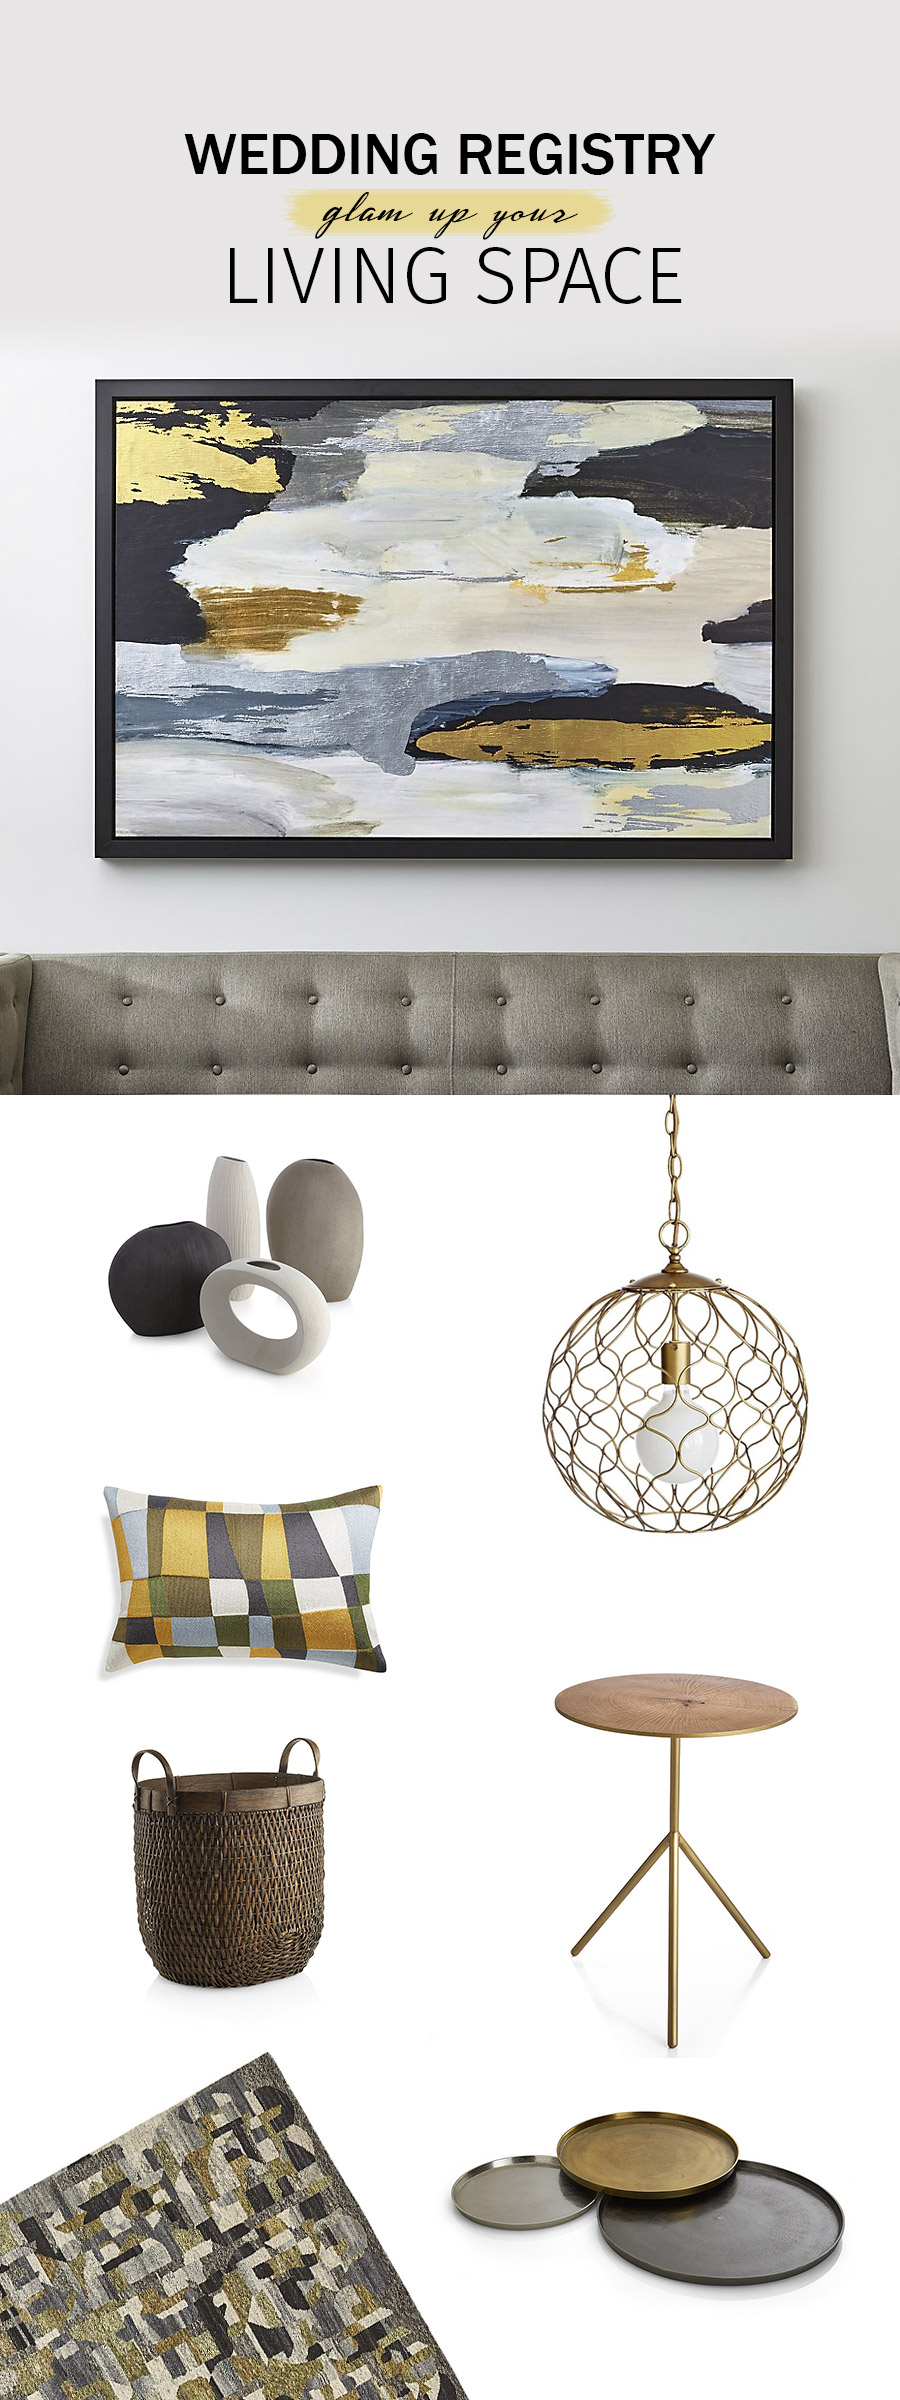 crate and barrel wedding registry ideas 2018 trendy living room essentials glam up items mixed metal gold accents